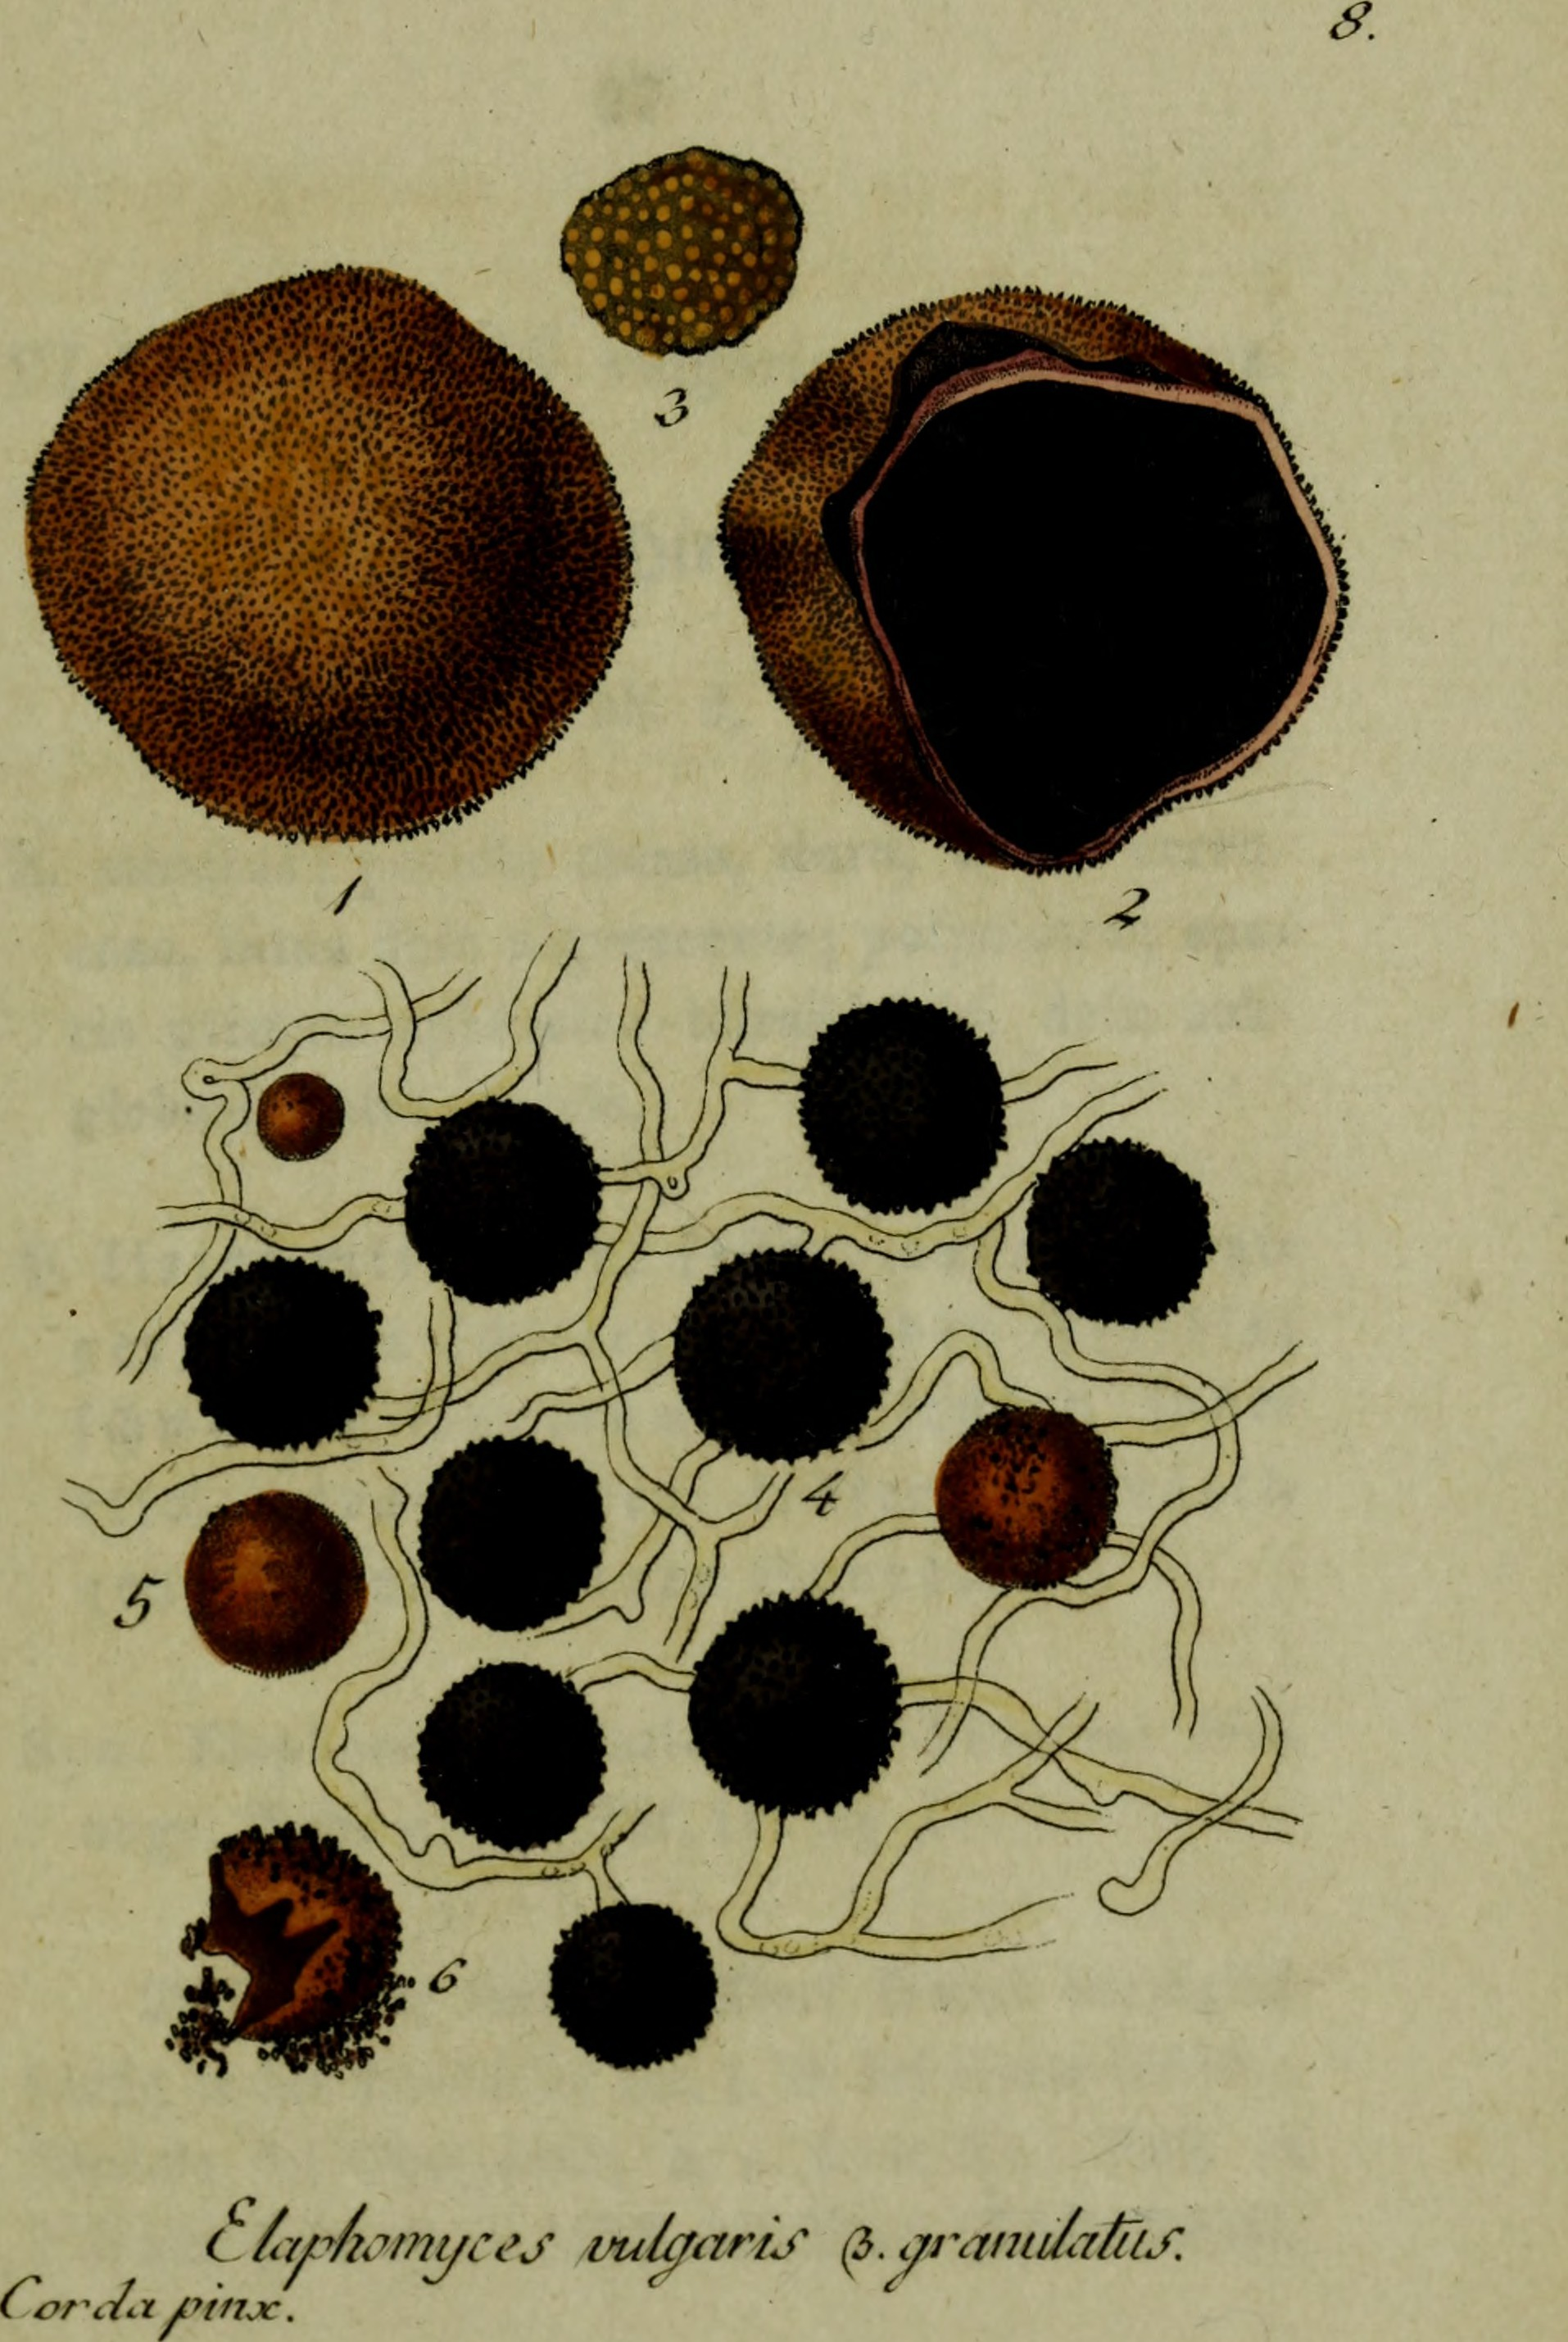 Image of Elaphomyces